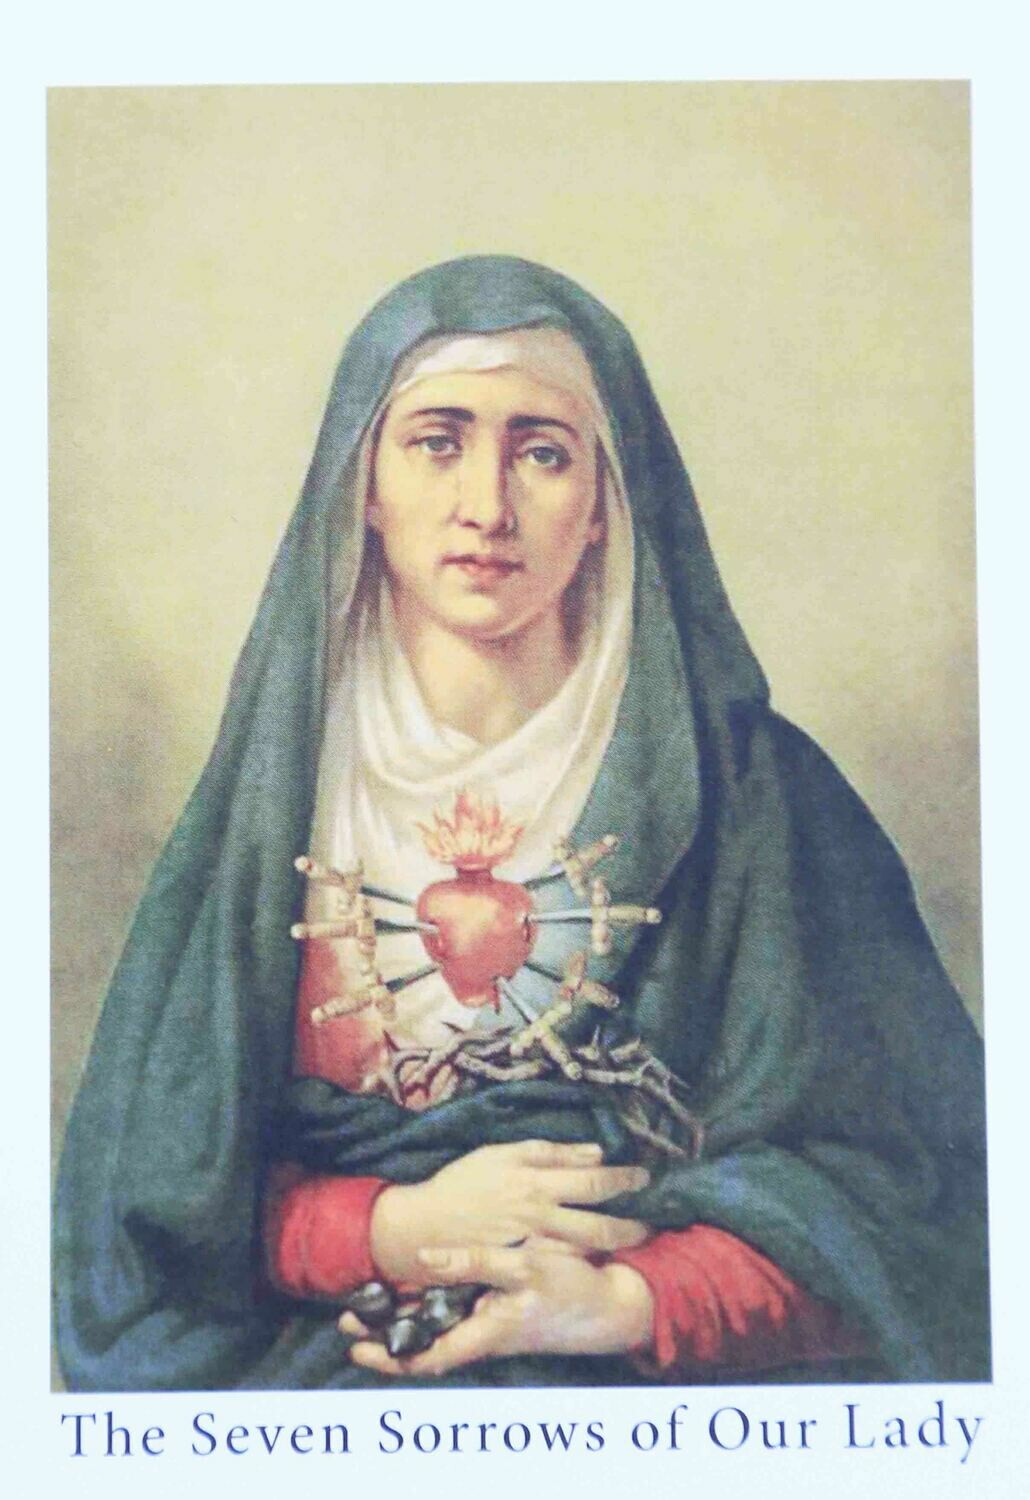 The Seven Sorrows of Our Lady